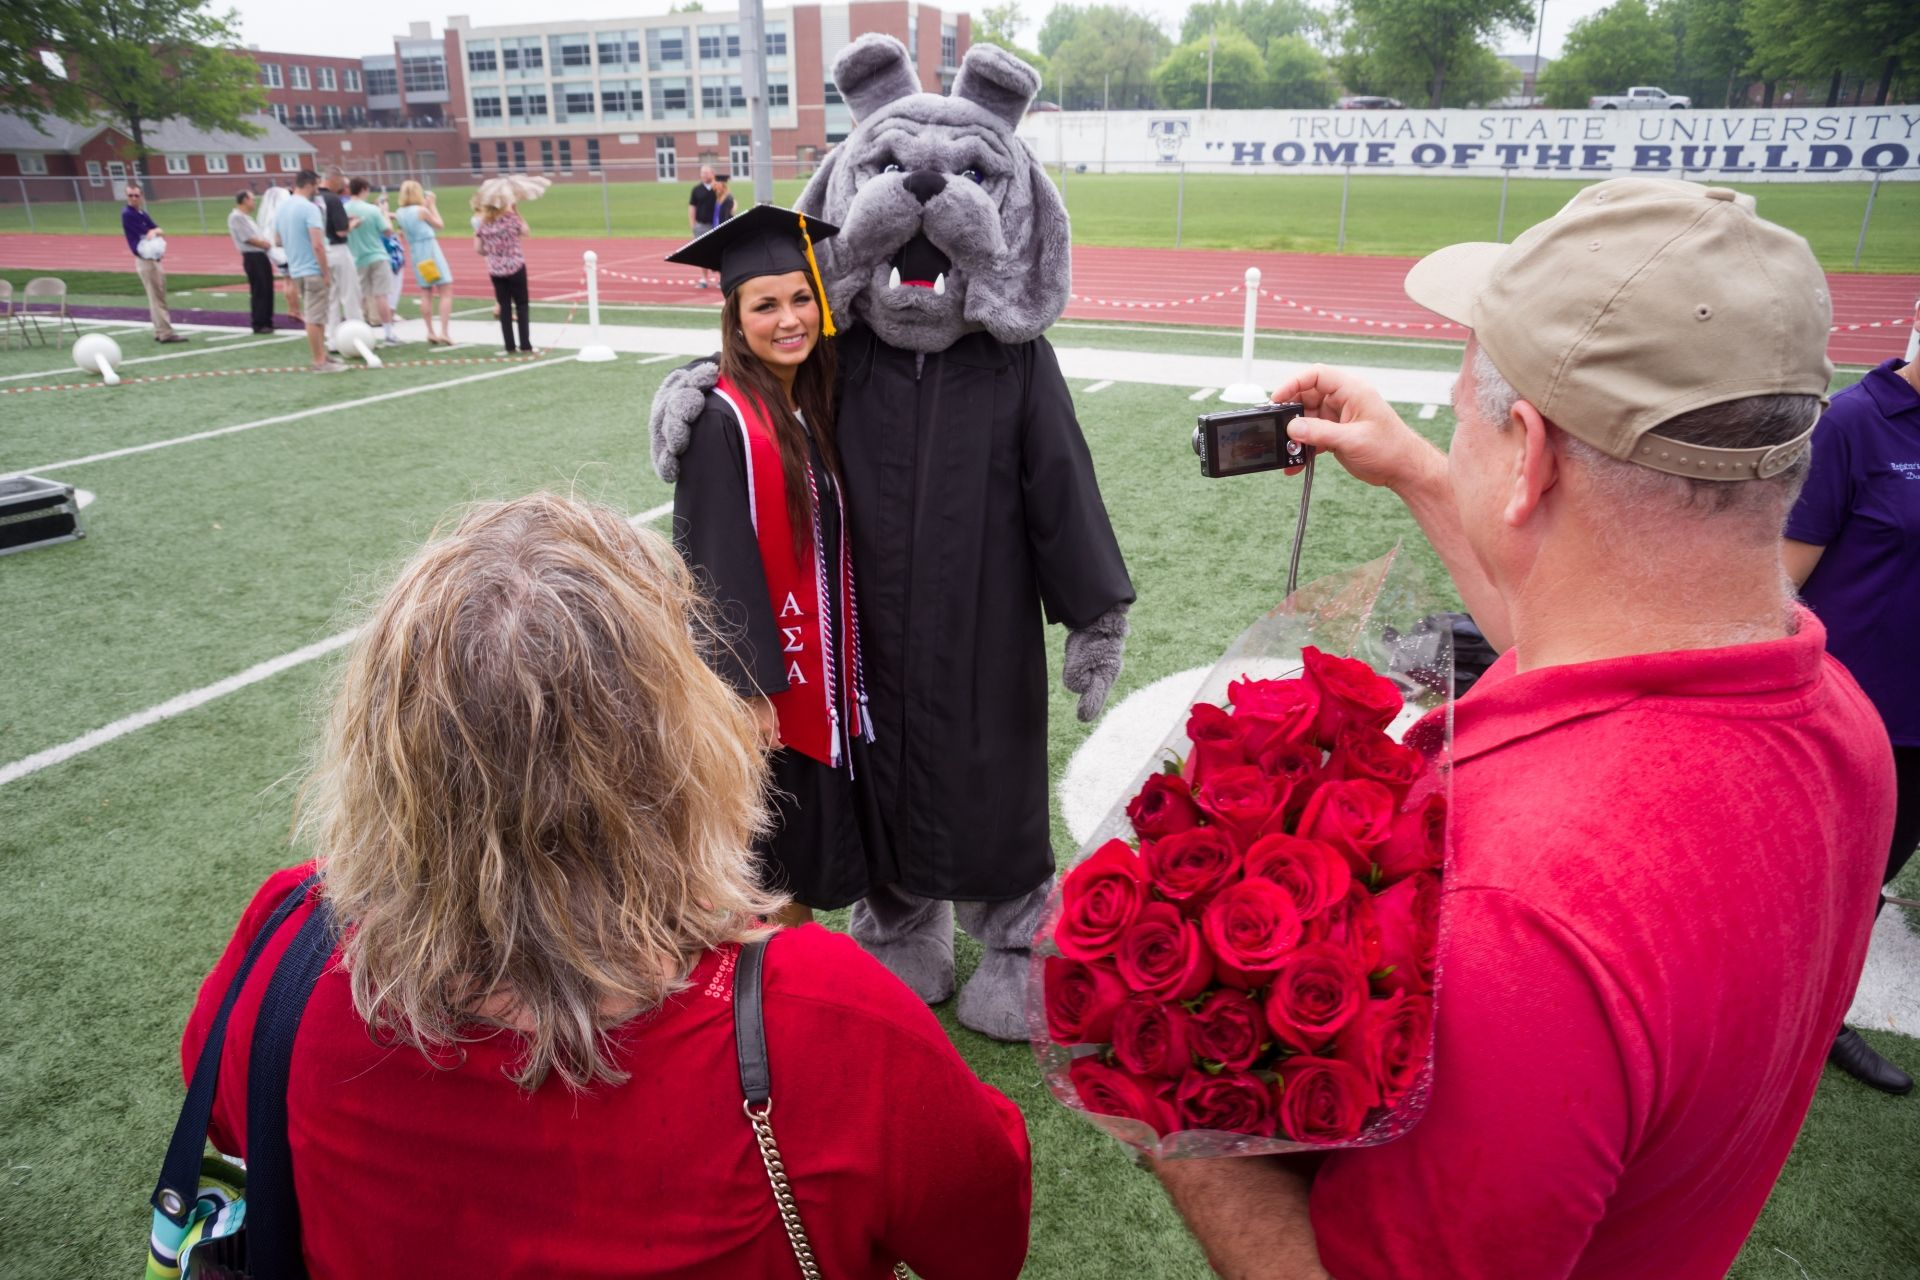 Parents taking photo of Truman graduate with the mascot